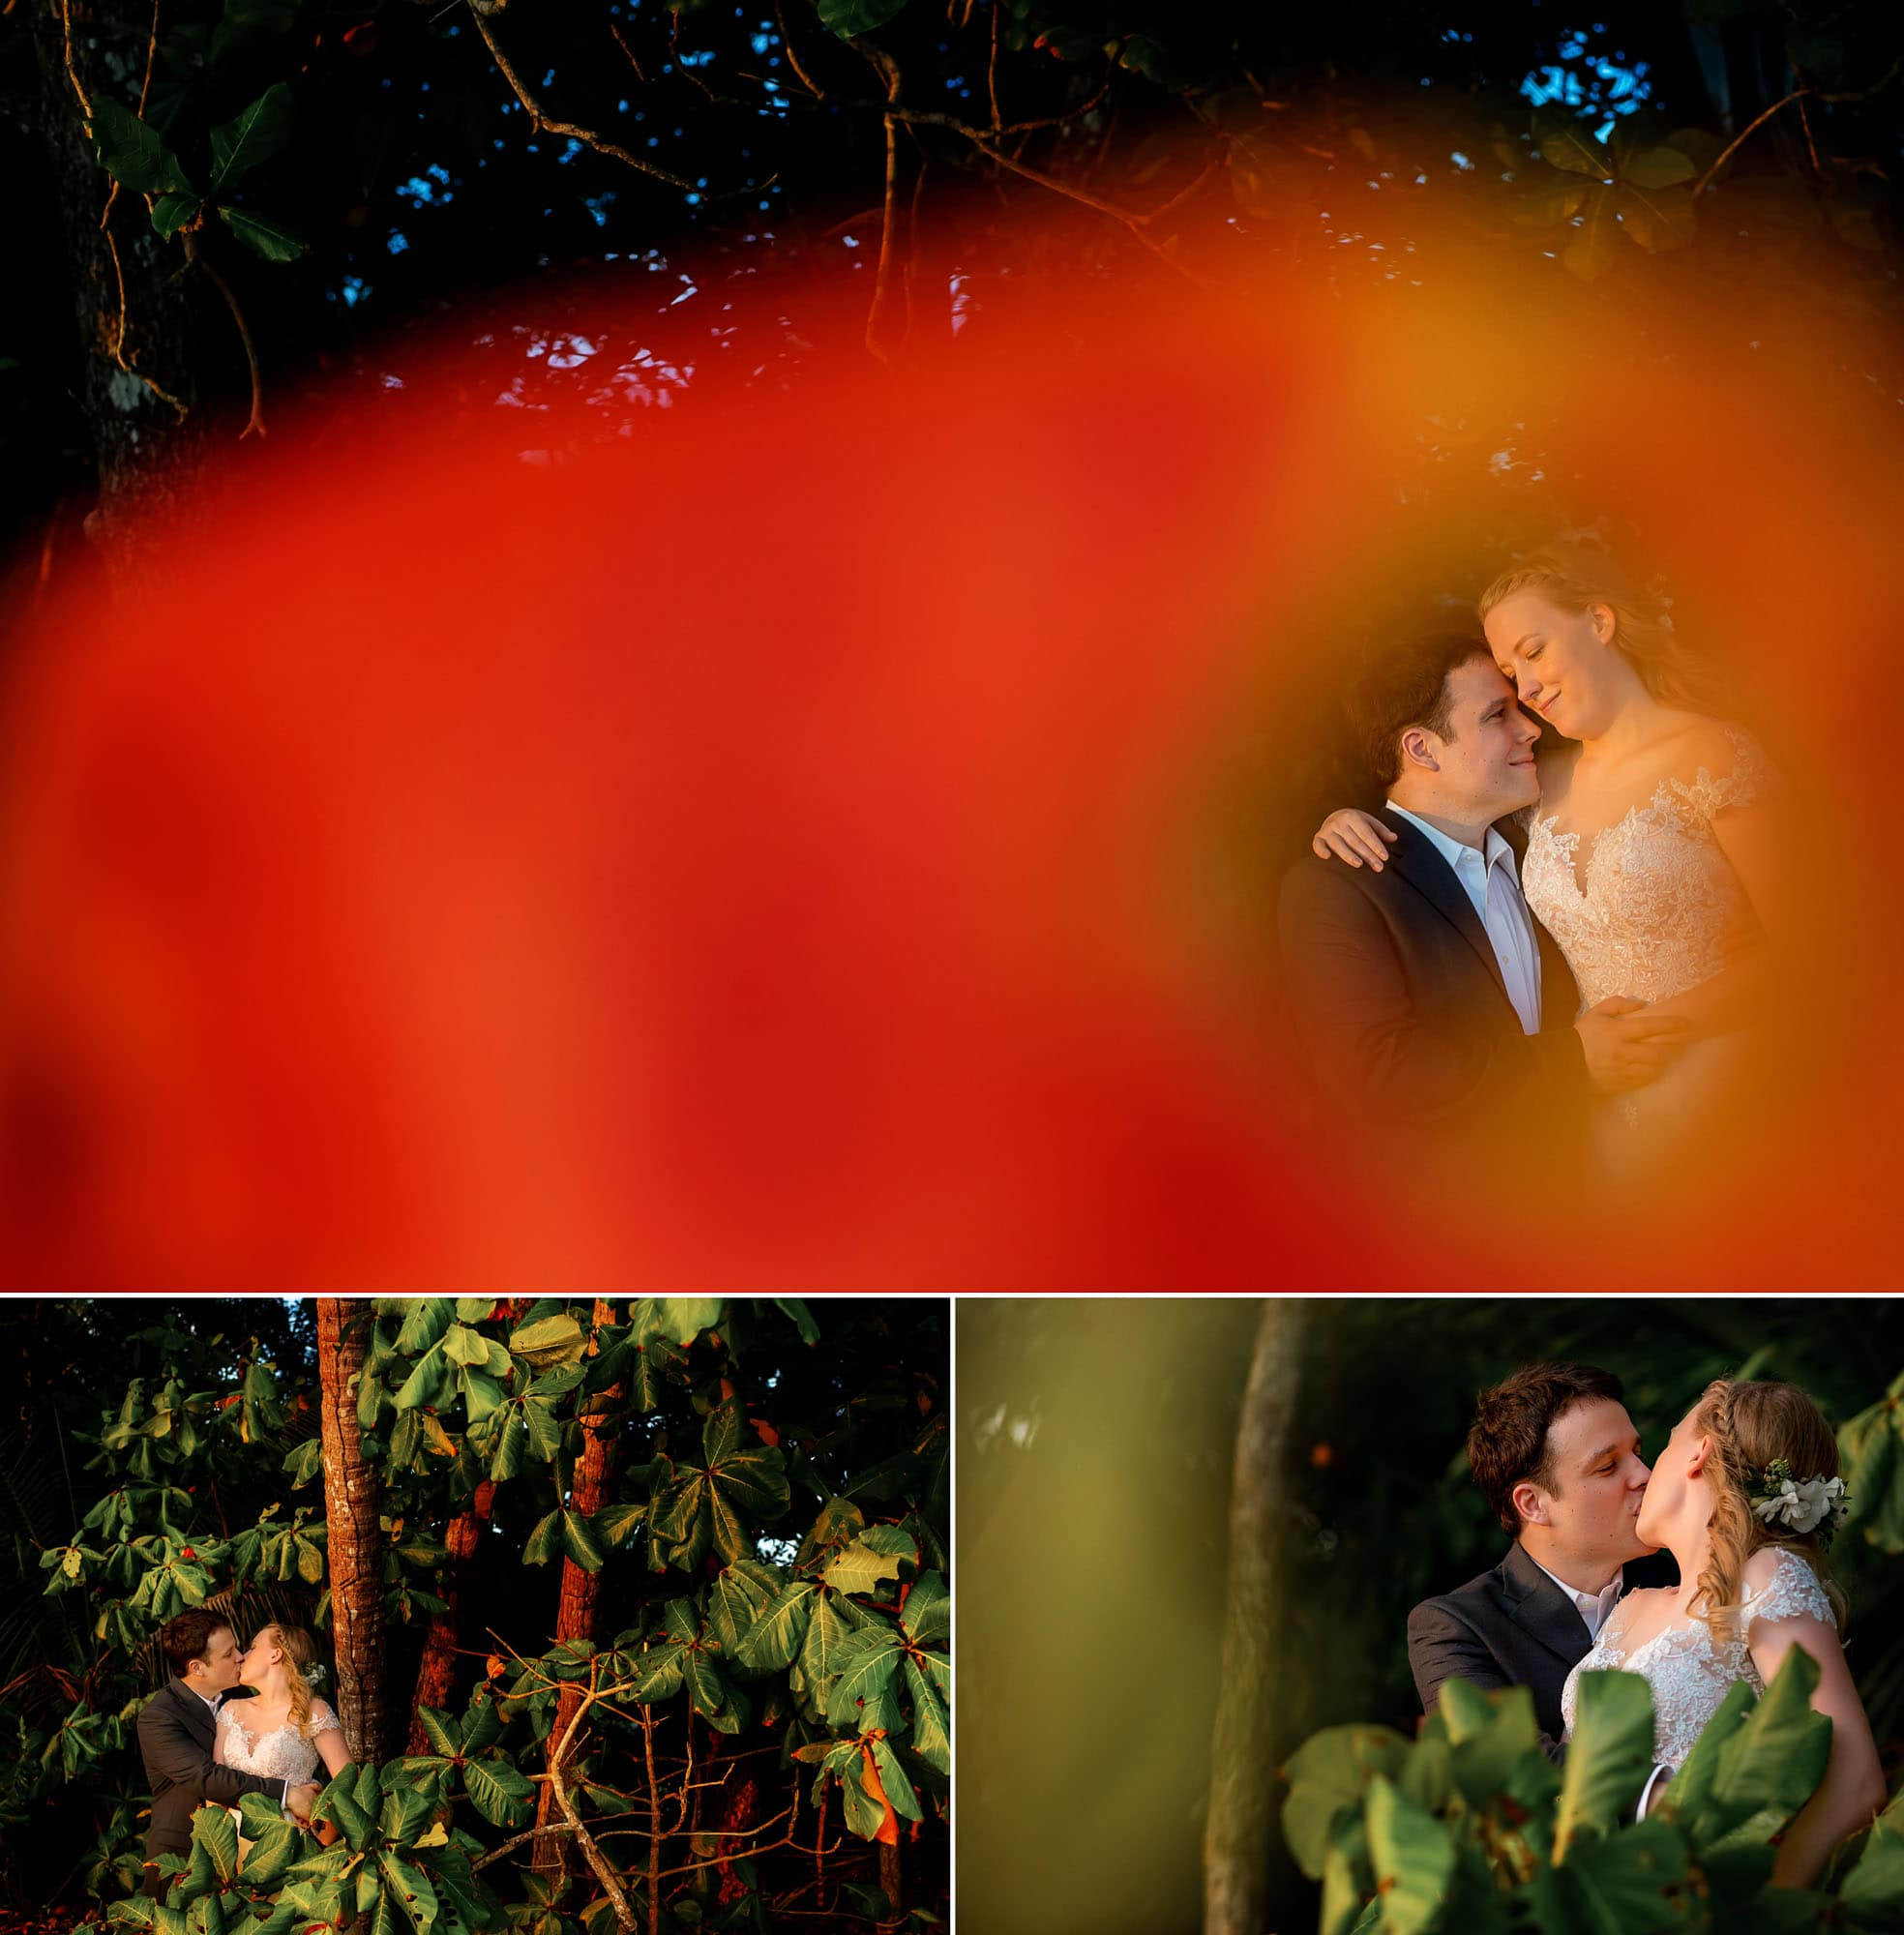 Creative Wedding Photography: Shooting through things to spotlight on the couple